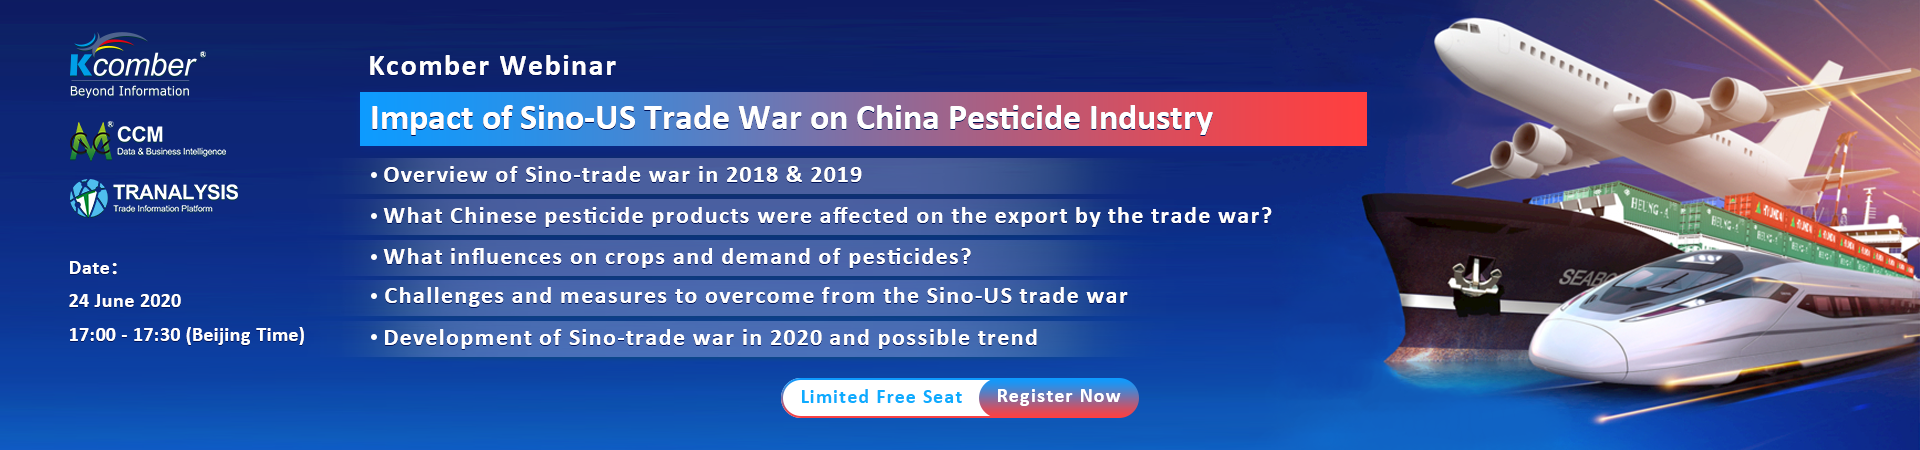 Impact of Sino-US Trade War on China Pesticide Industry